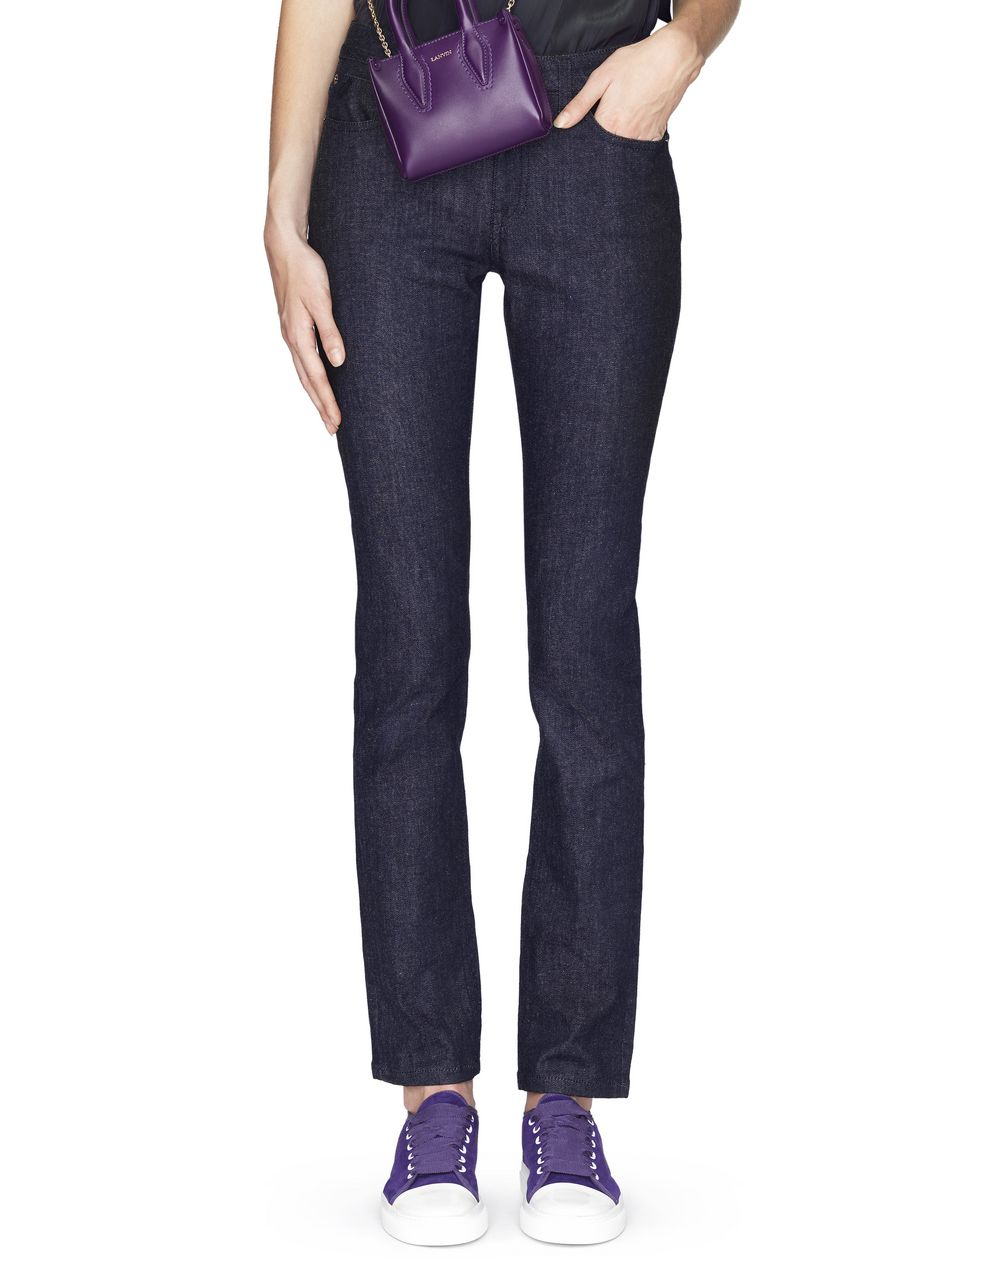 INDIGO DENIM PANTS - Lanvin